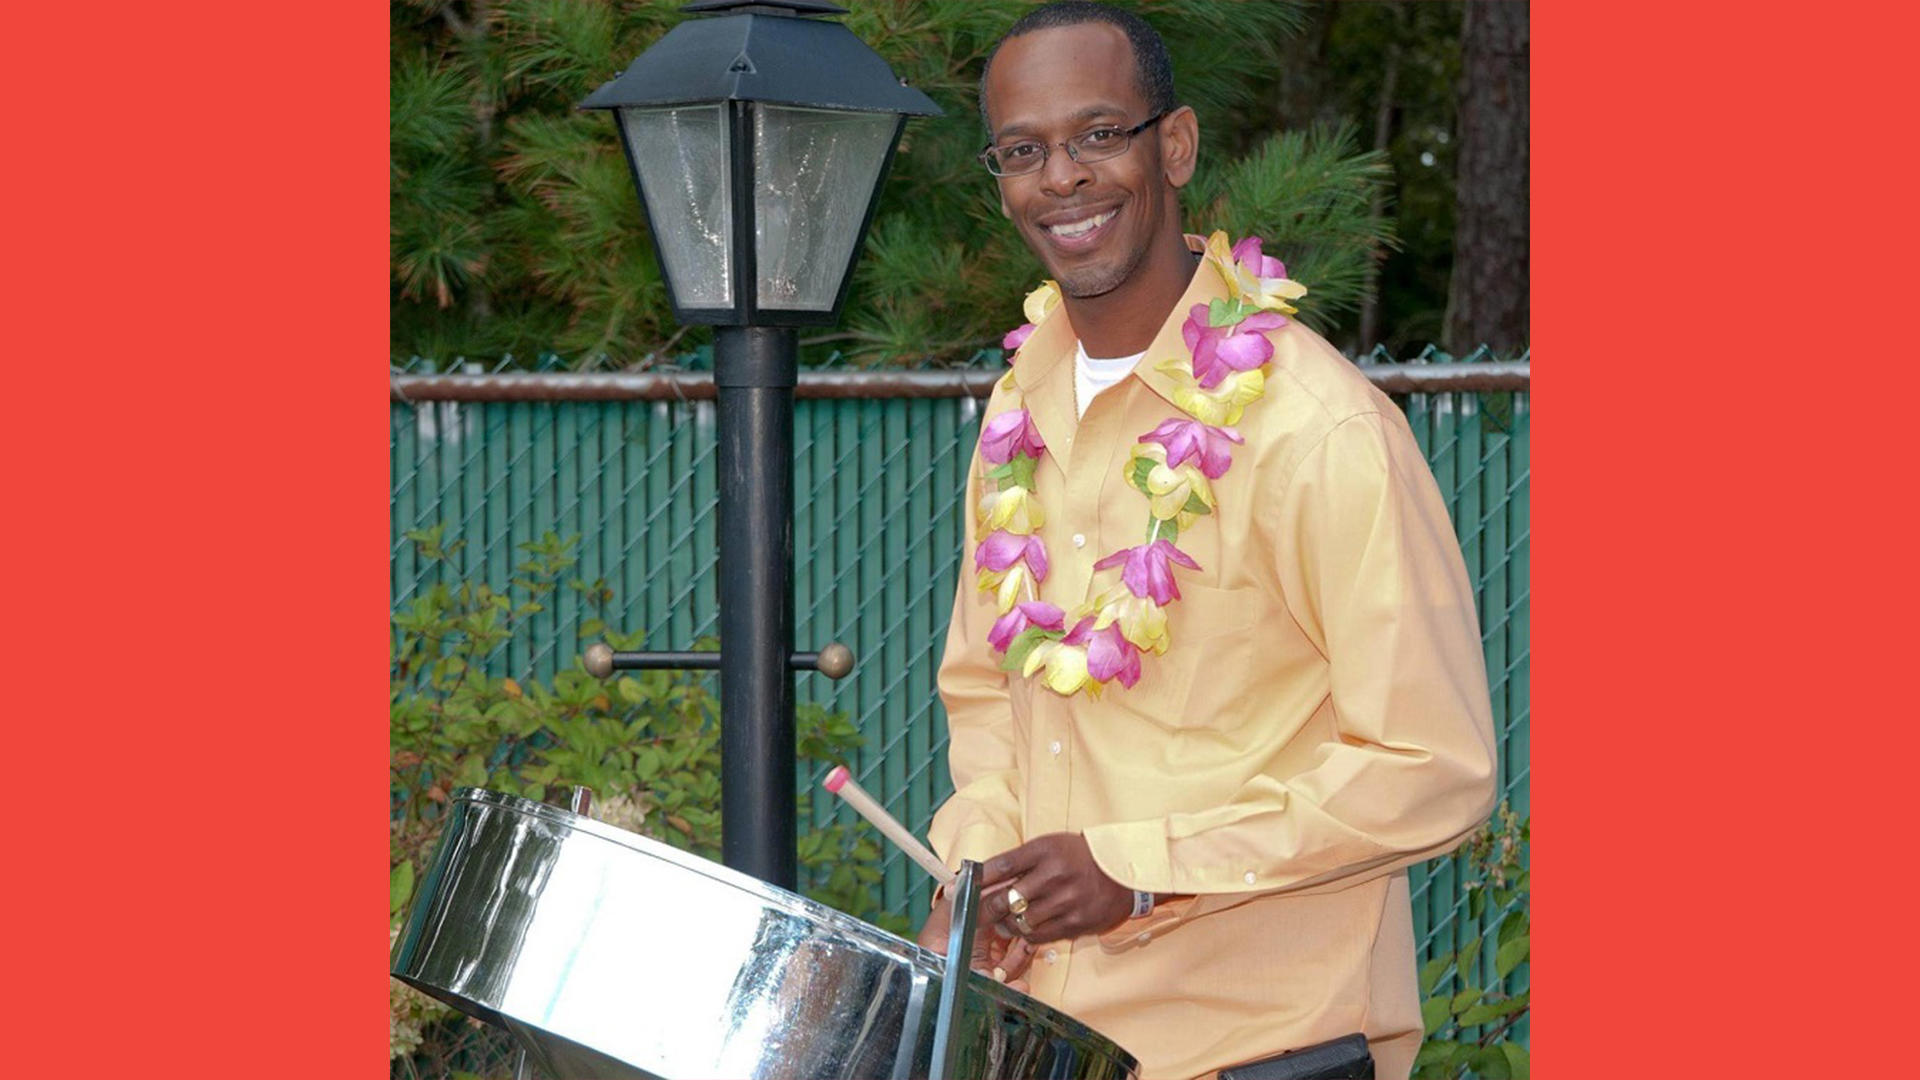 Justin Petty, of Justin Petty Steel Drums; photo courtesy of the artist